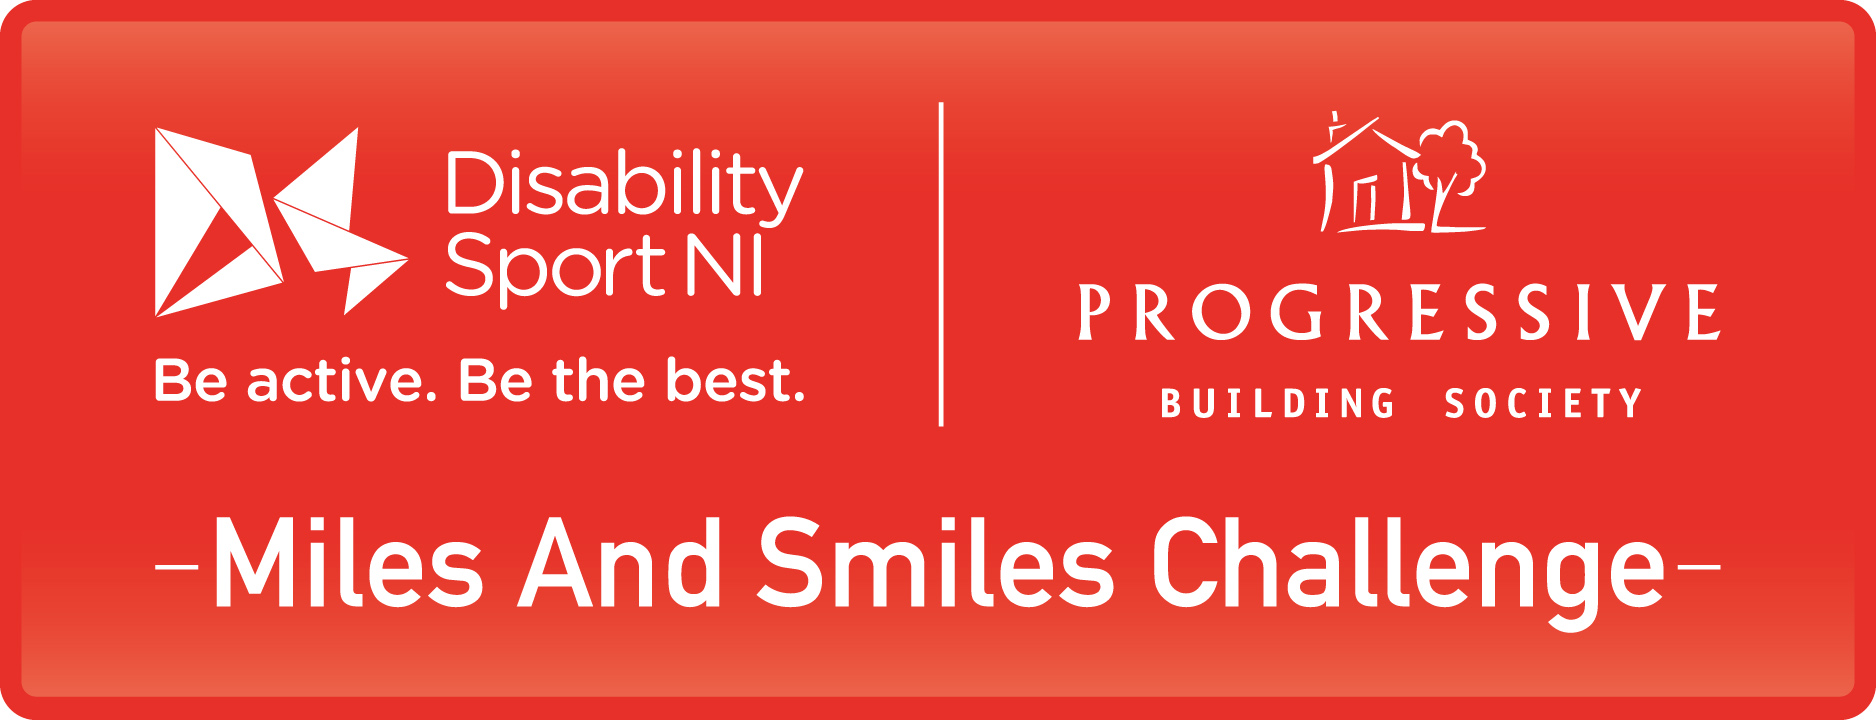 A joint logo for Disability Sport NI and Progressive Building Society that says Miles and Smiles Challenge.